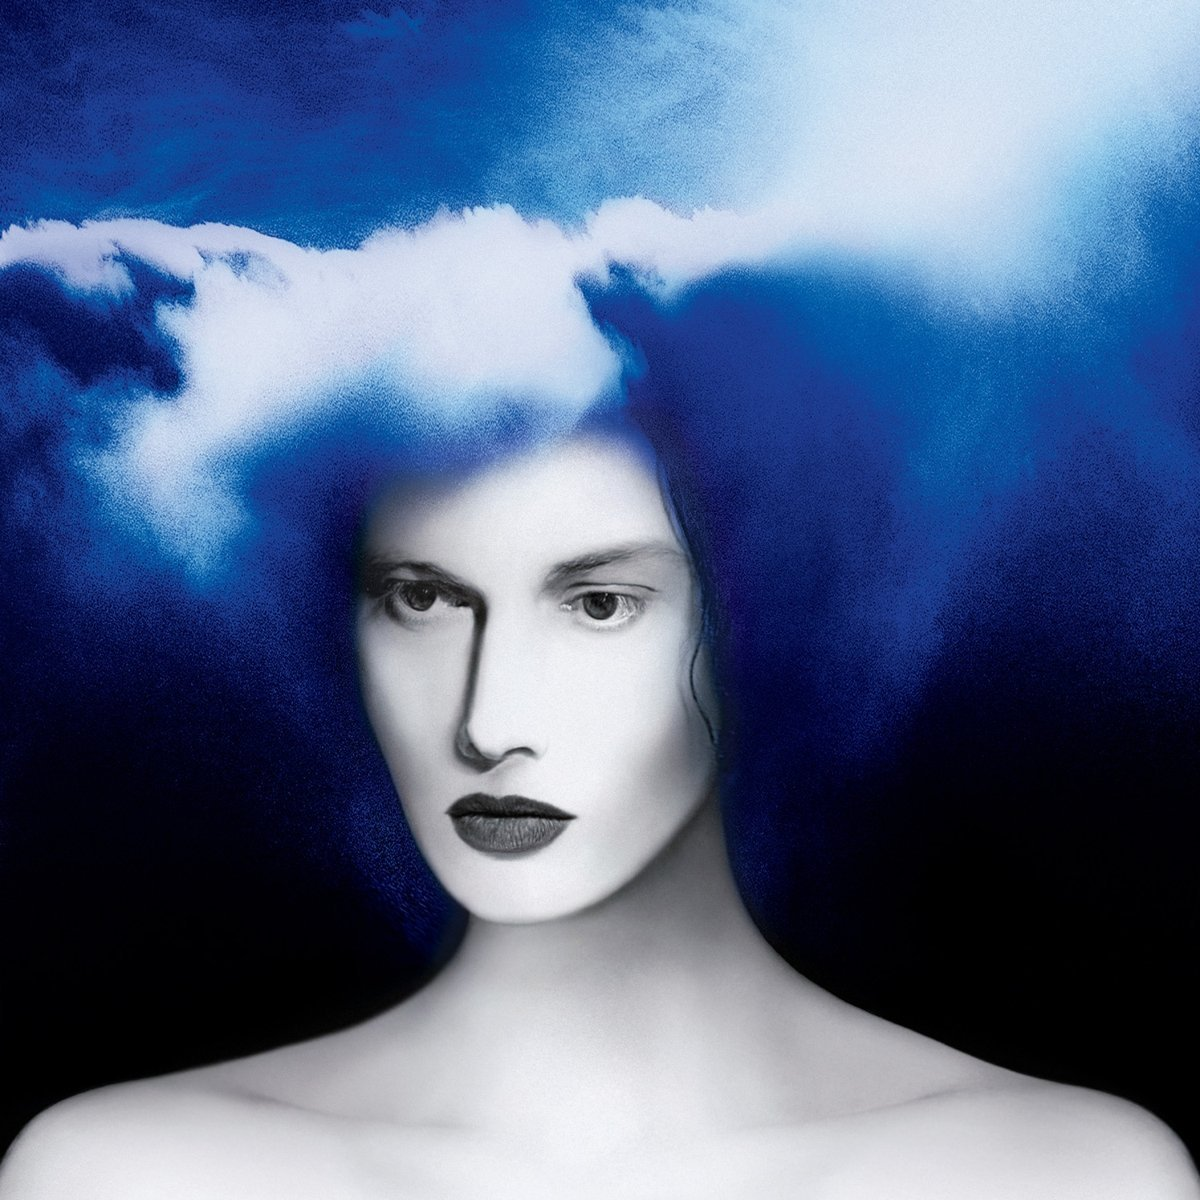 Boarding House Reach By Jack White Album Review